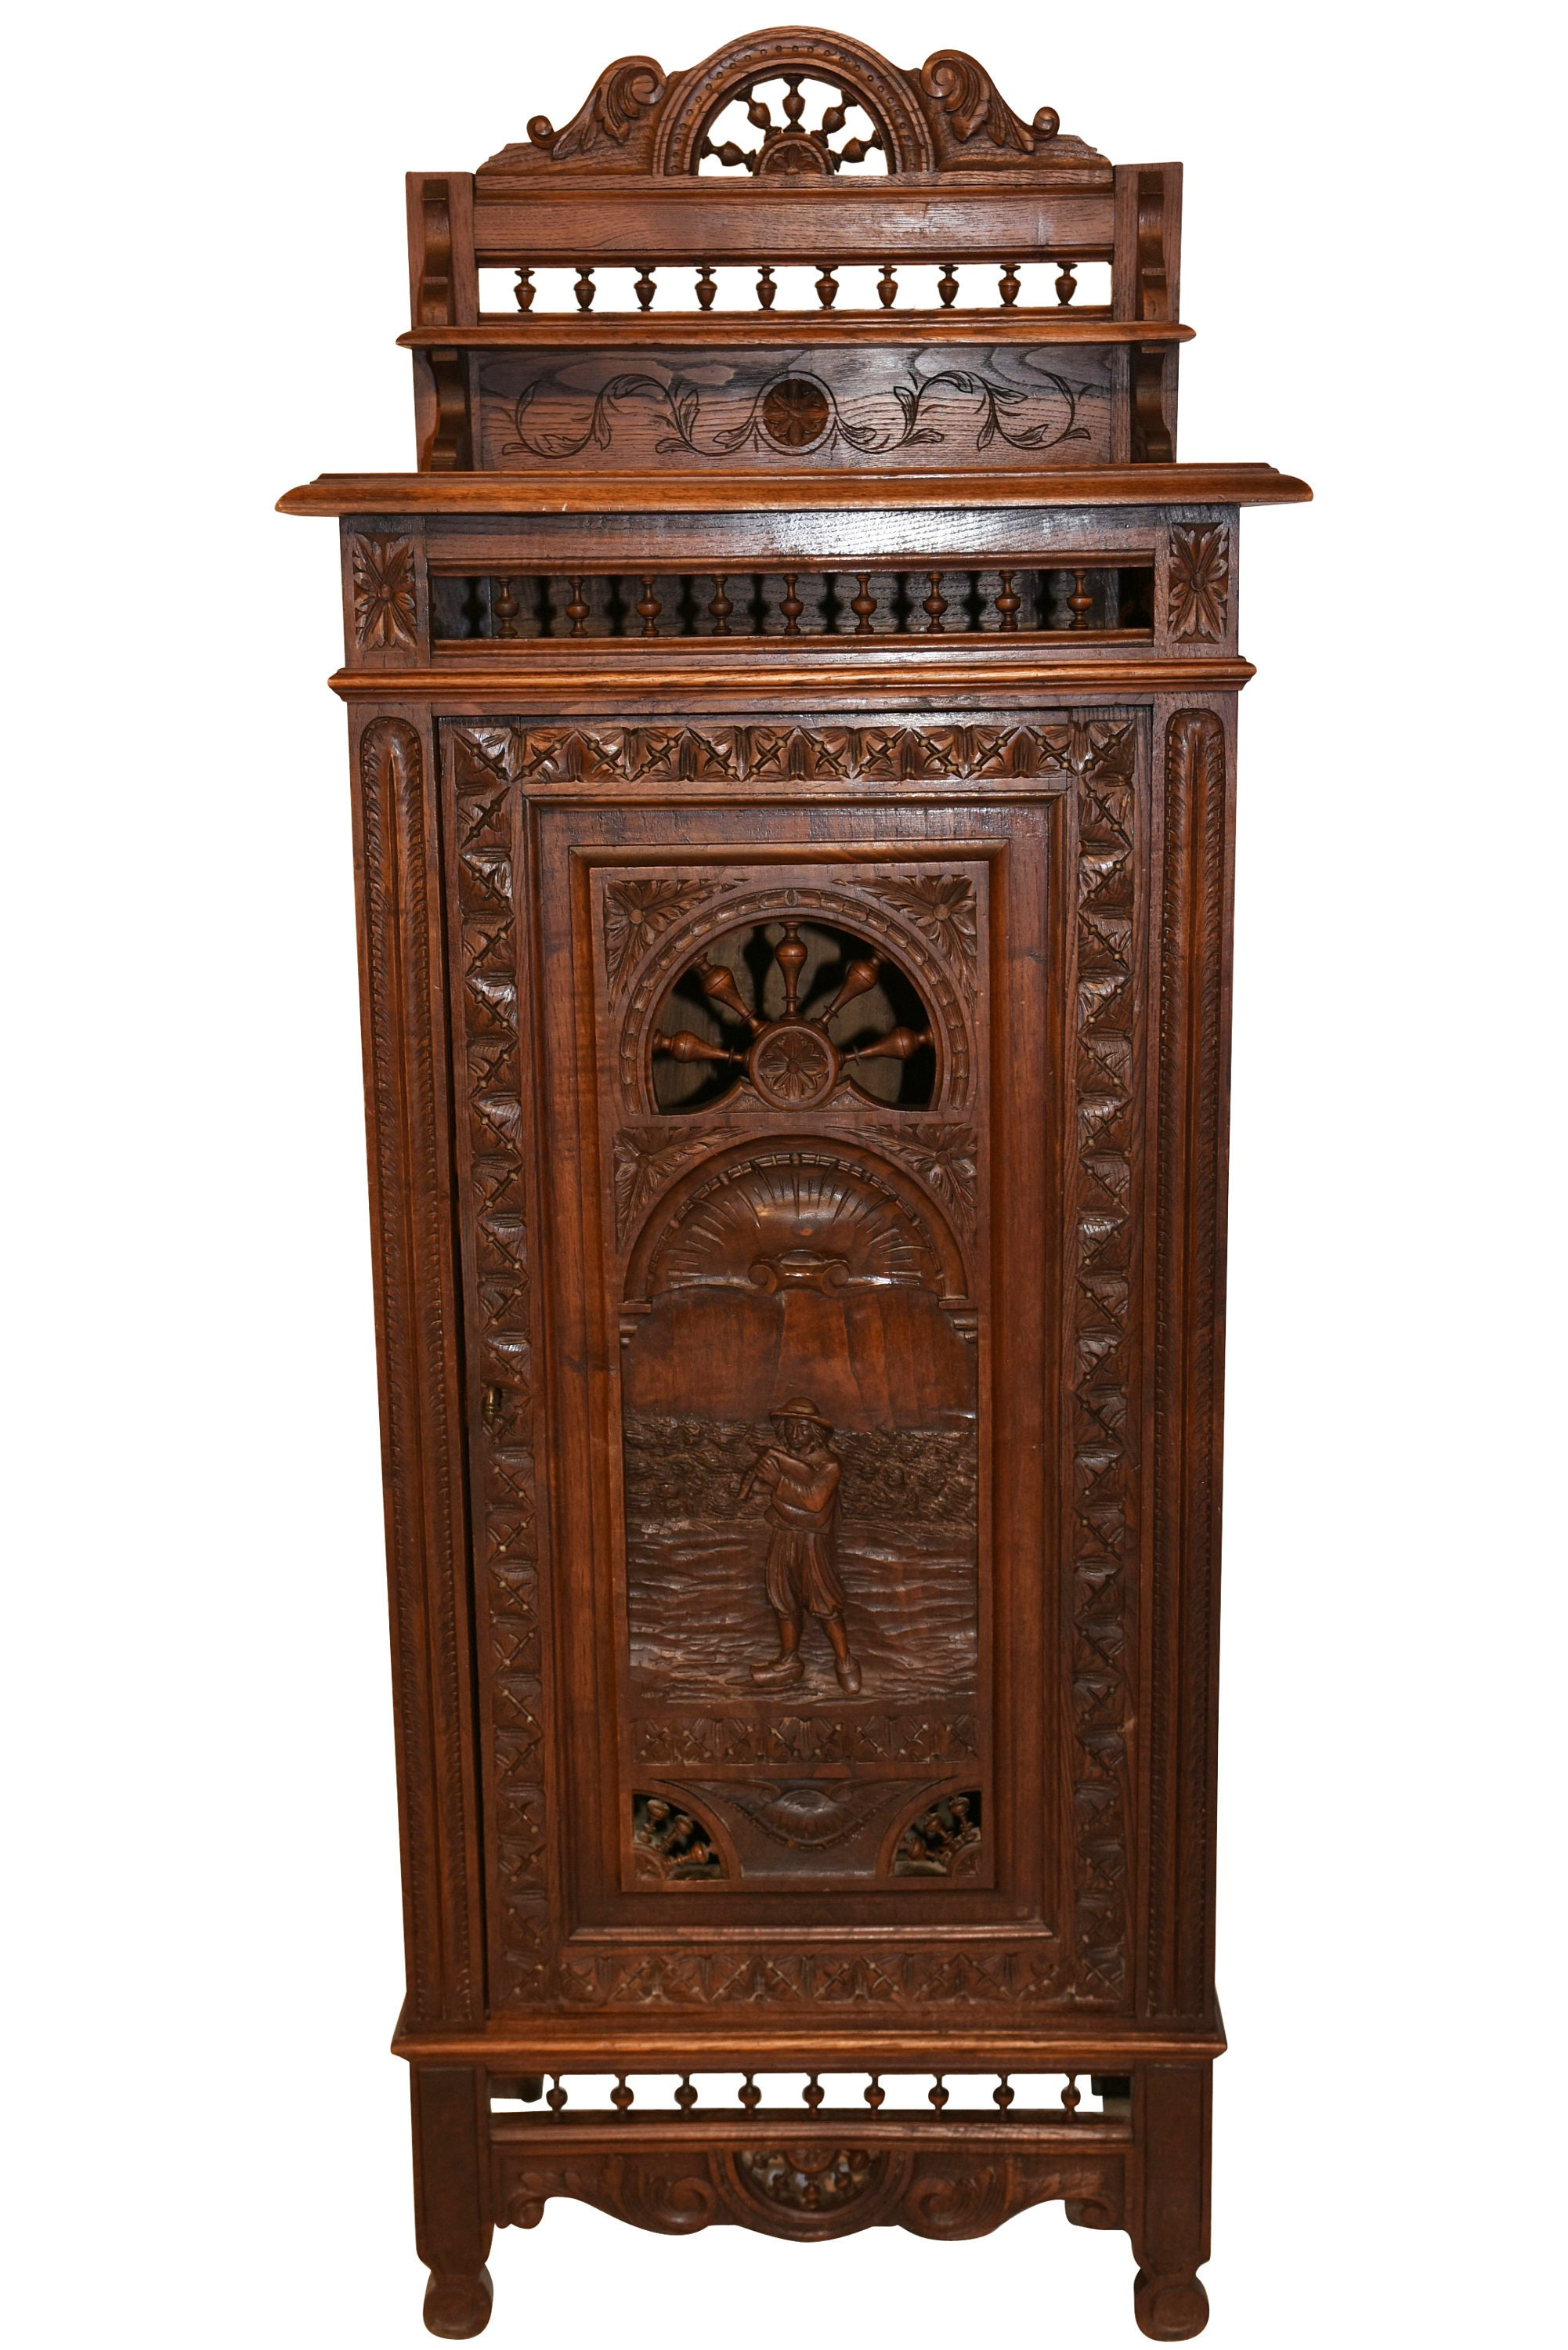 Cabinet D Architecte Nice nice narrow french breton cabinet, circa 1900, oak #9946